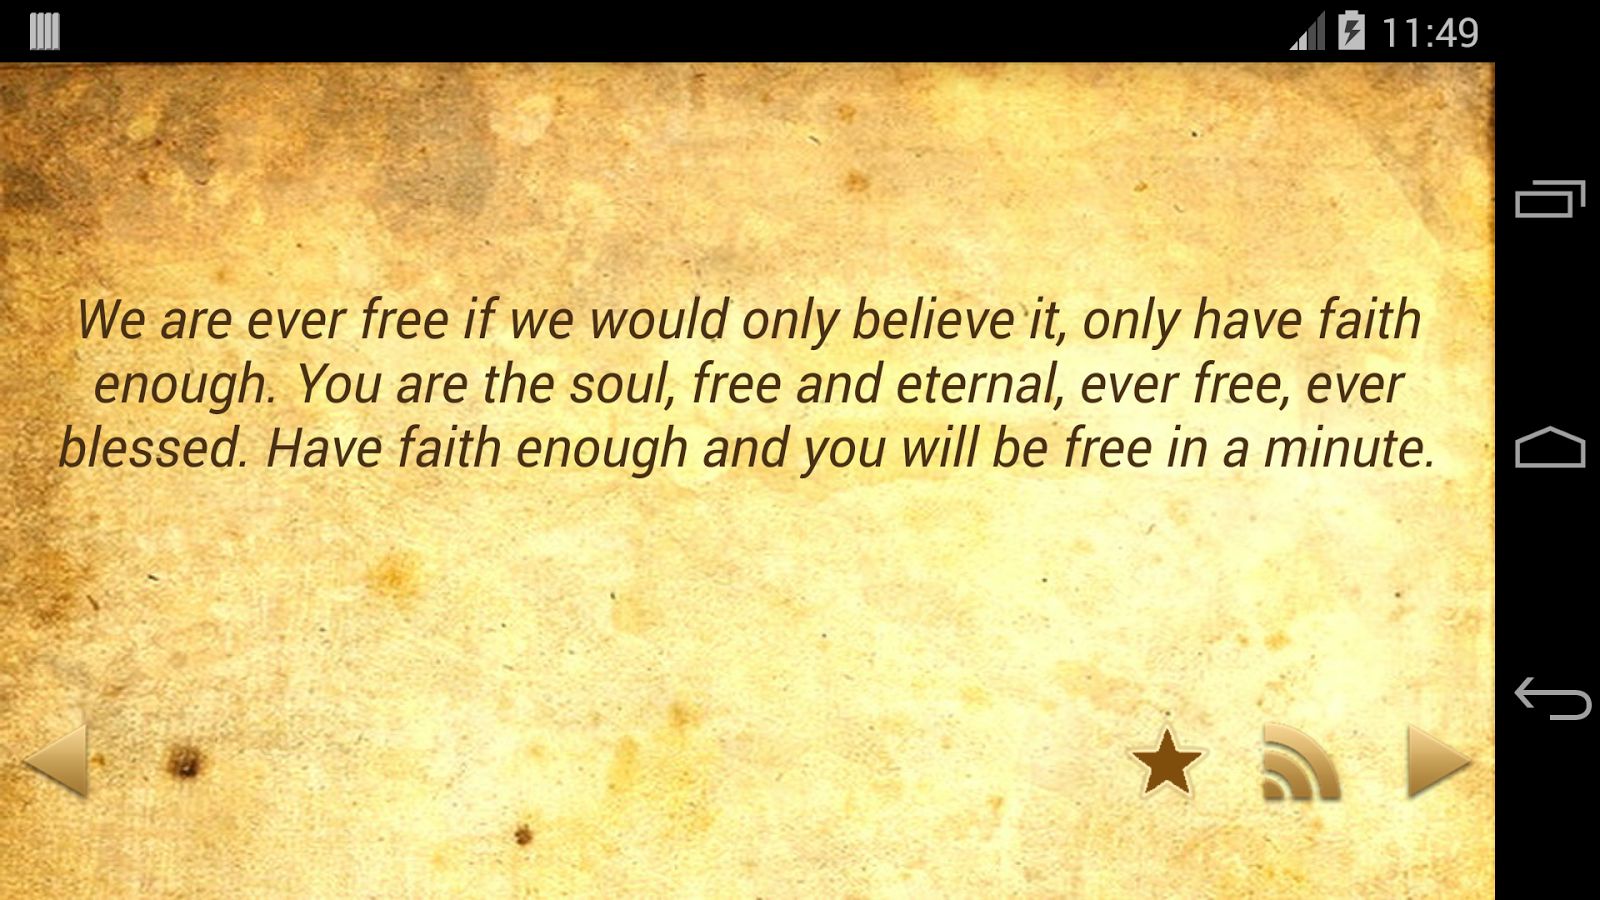 Free Daily Quotes Daily Swami Vivekananda Quotes Offline  Android Apps On Google Play